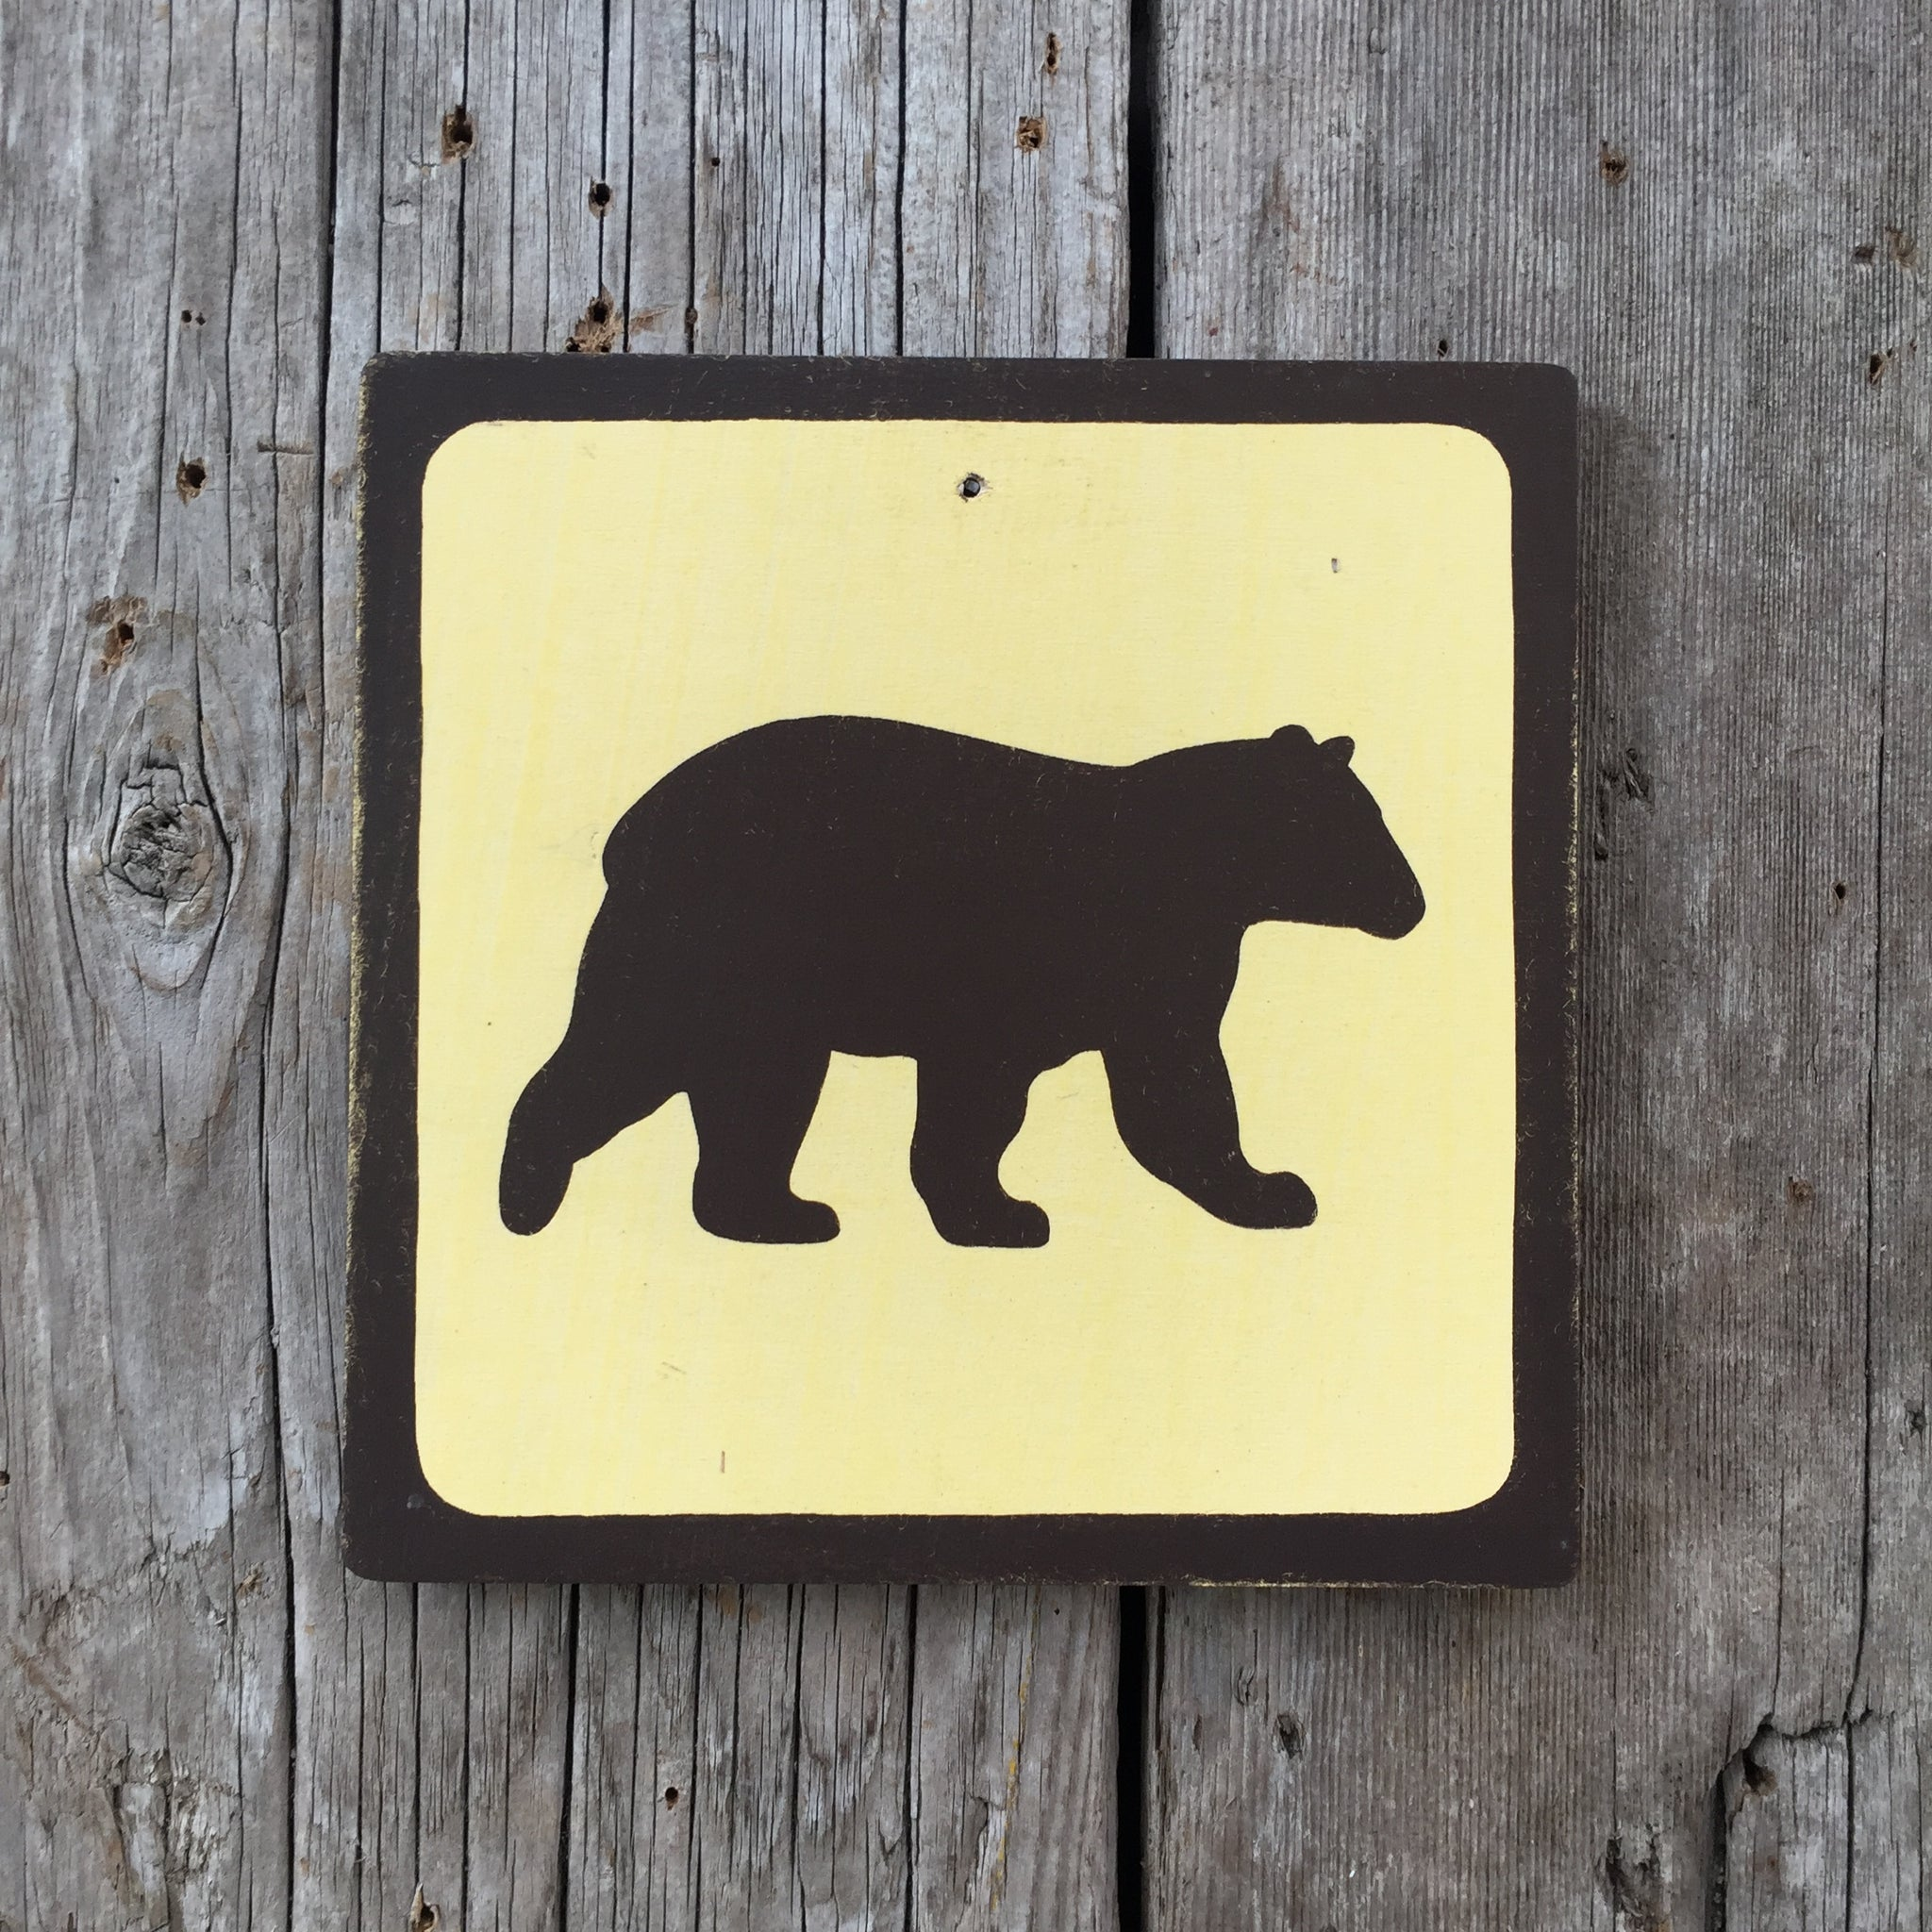 Handmade Vintage Bear Park Wildlife Outdoors Animal Icon Sign